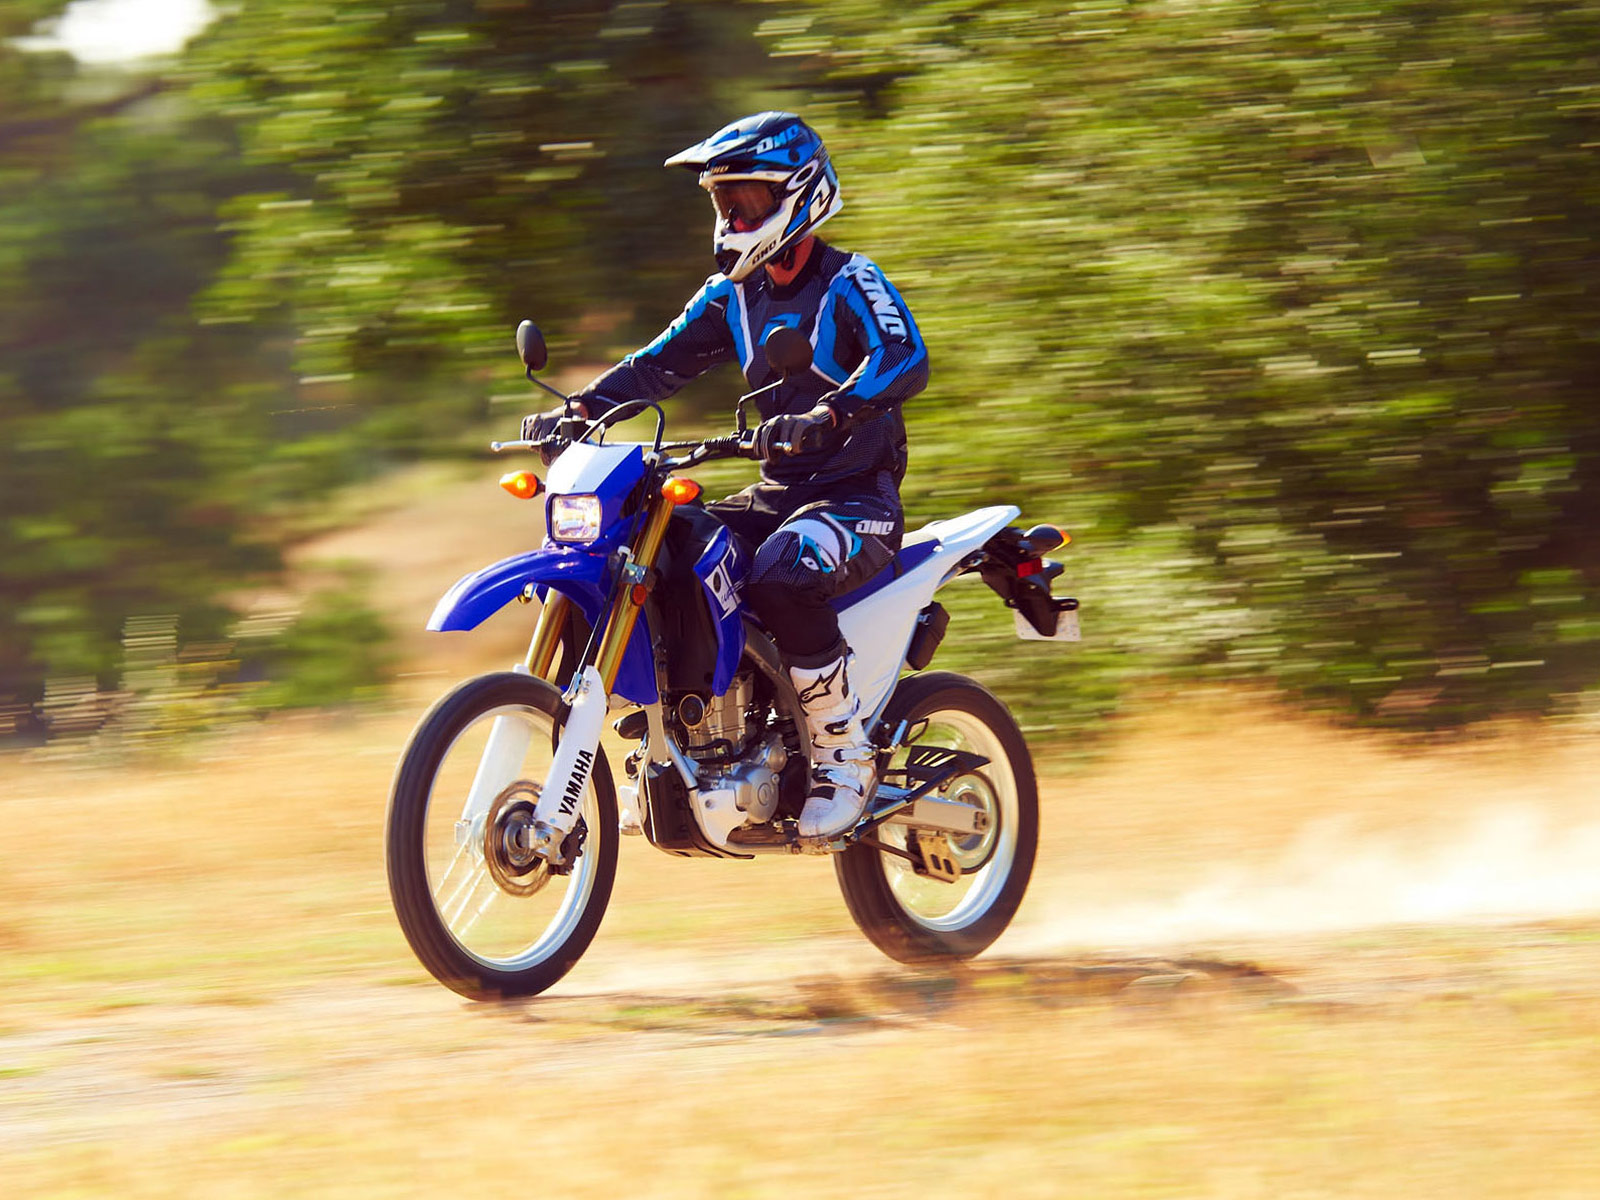 2014 wr250r yamaha pictures review specifications for Yamaha wr250r horsepower